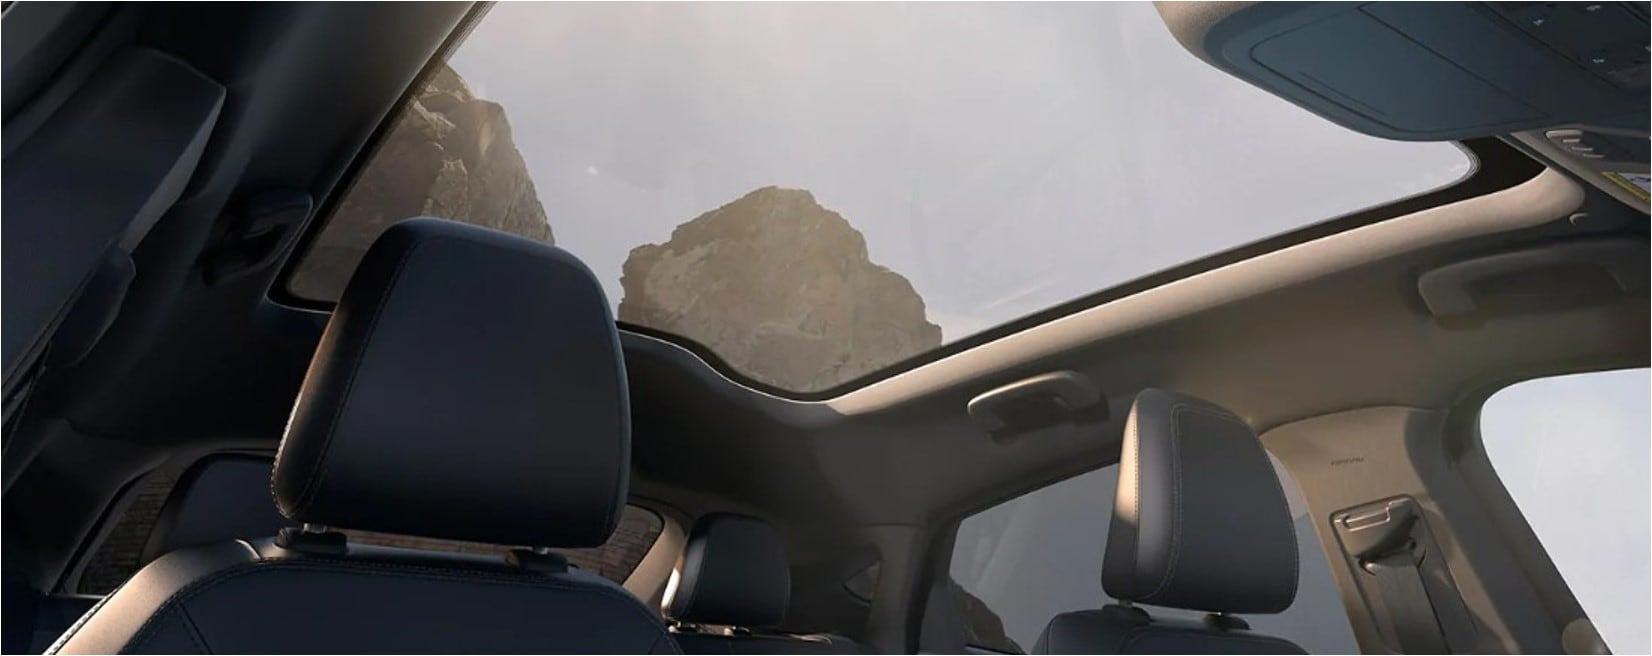 The moonroof of a 2021 Mustang Mach-E